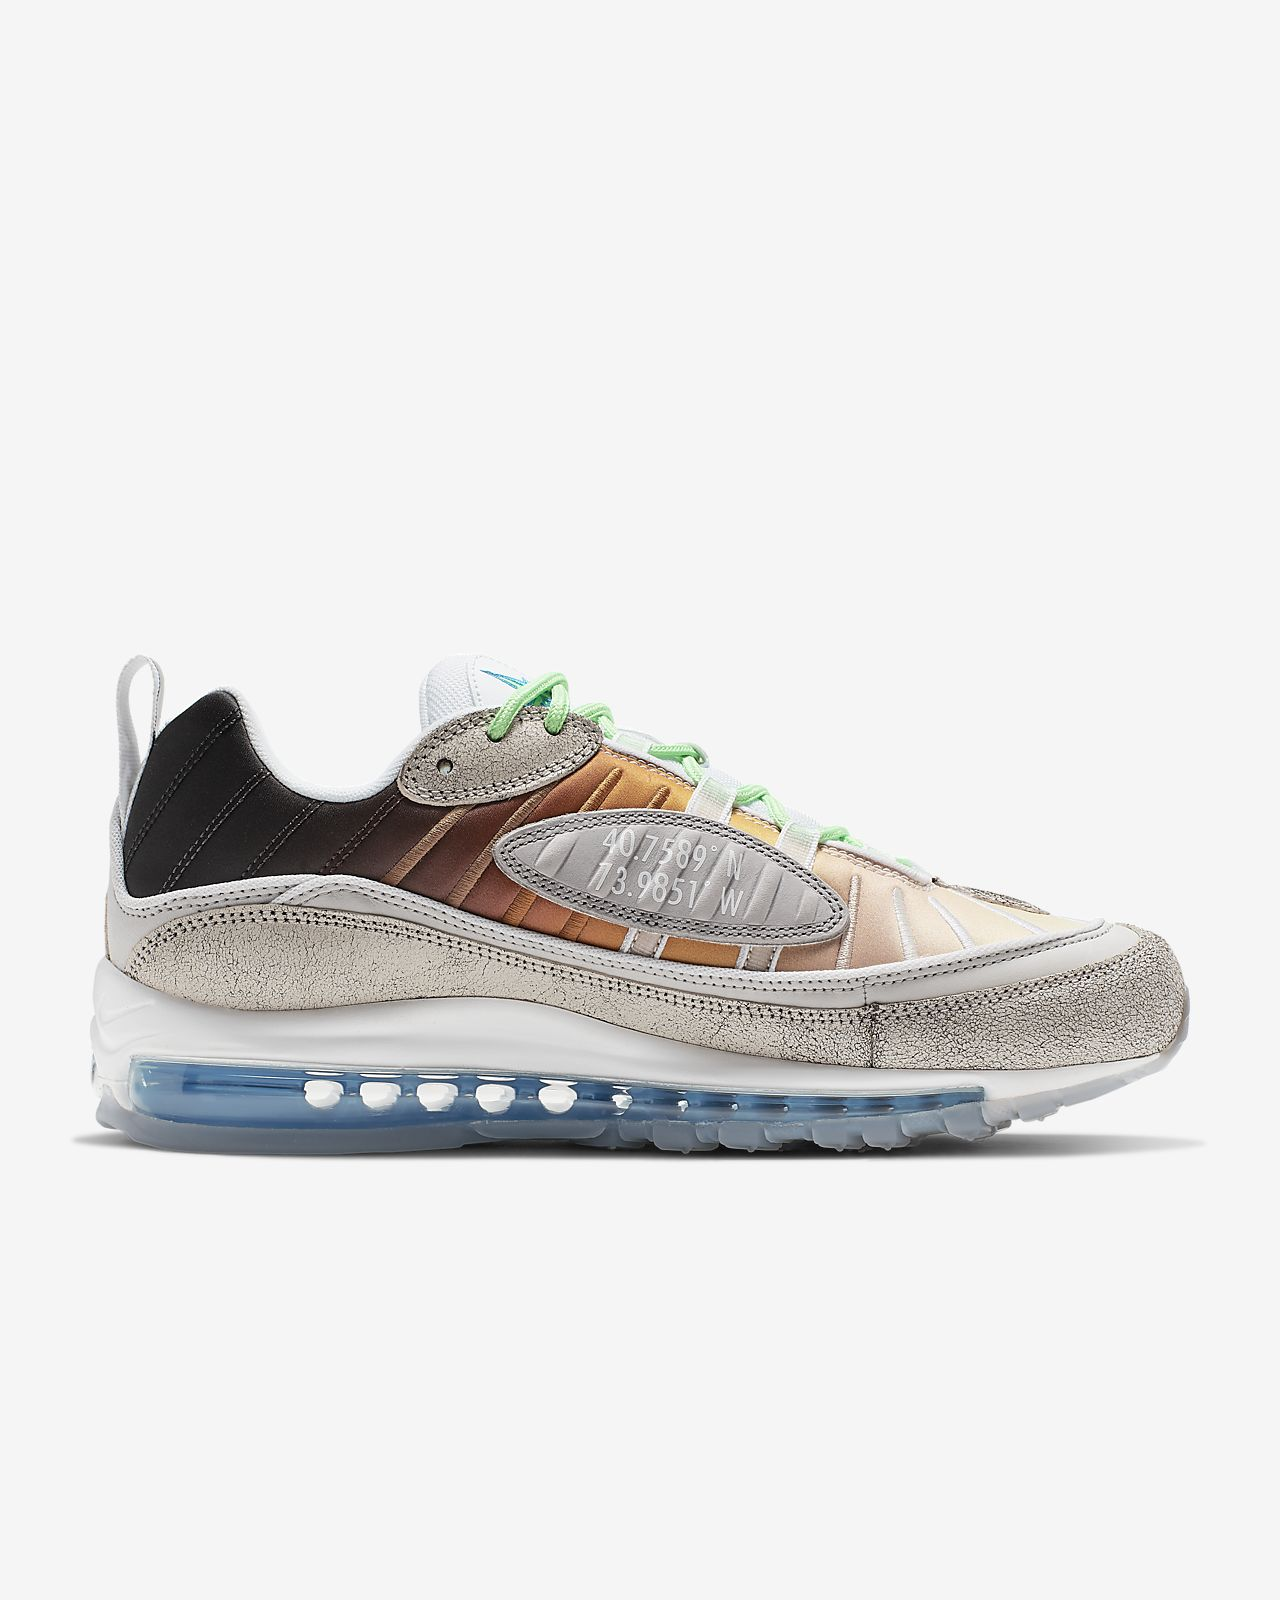 best sneakers cheap for sale excellent quality Nike Air Max 98 On Air Gabrielle Serrano Shoe